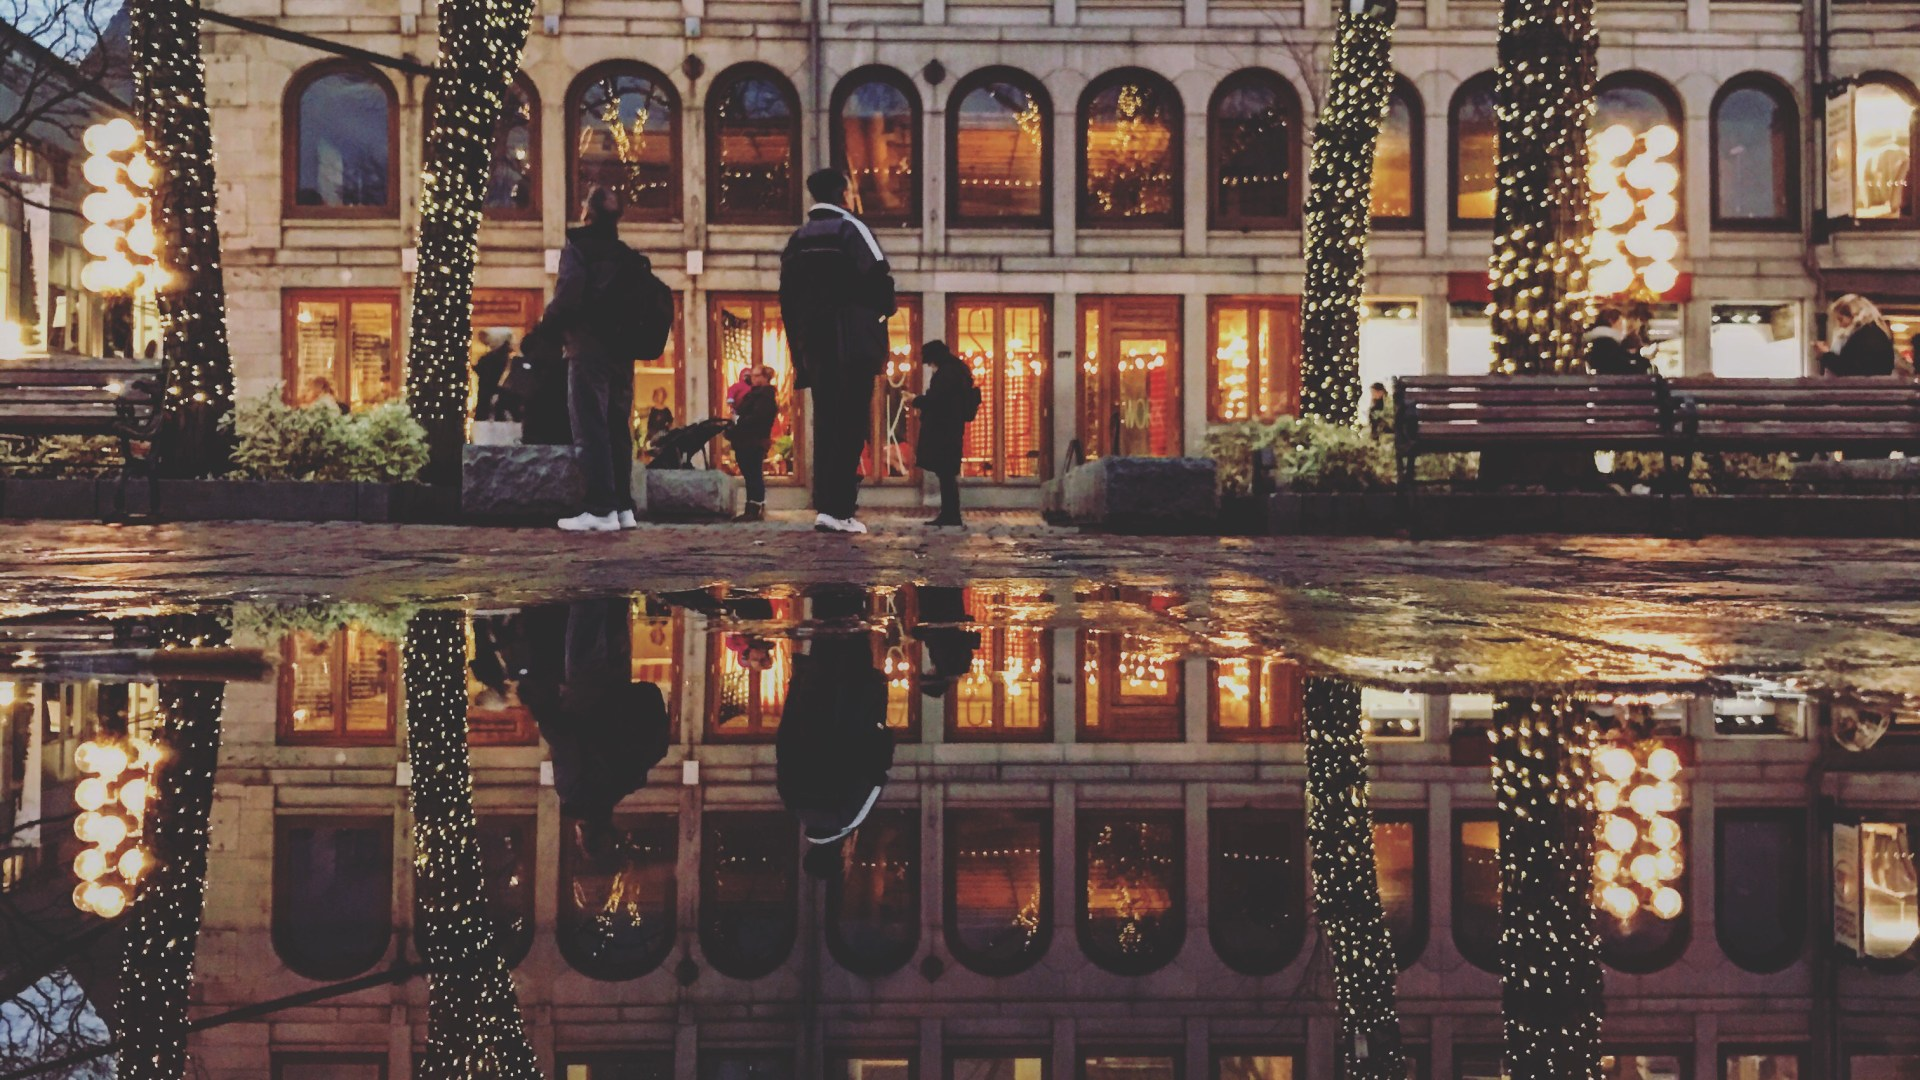 Instagramming Boston: An Interview With @bobby_in_boston